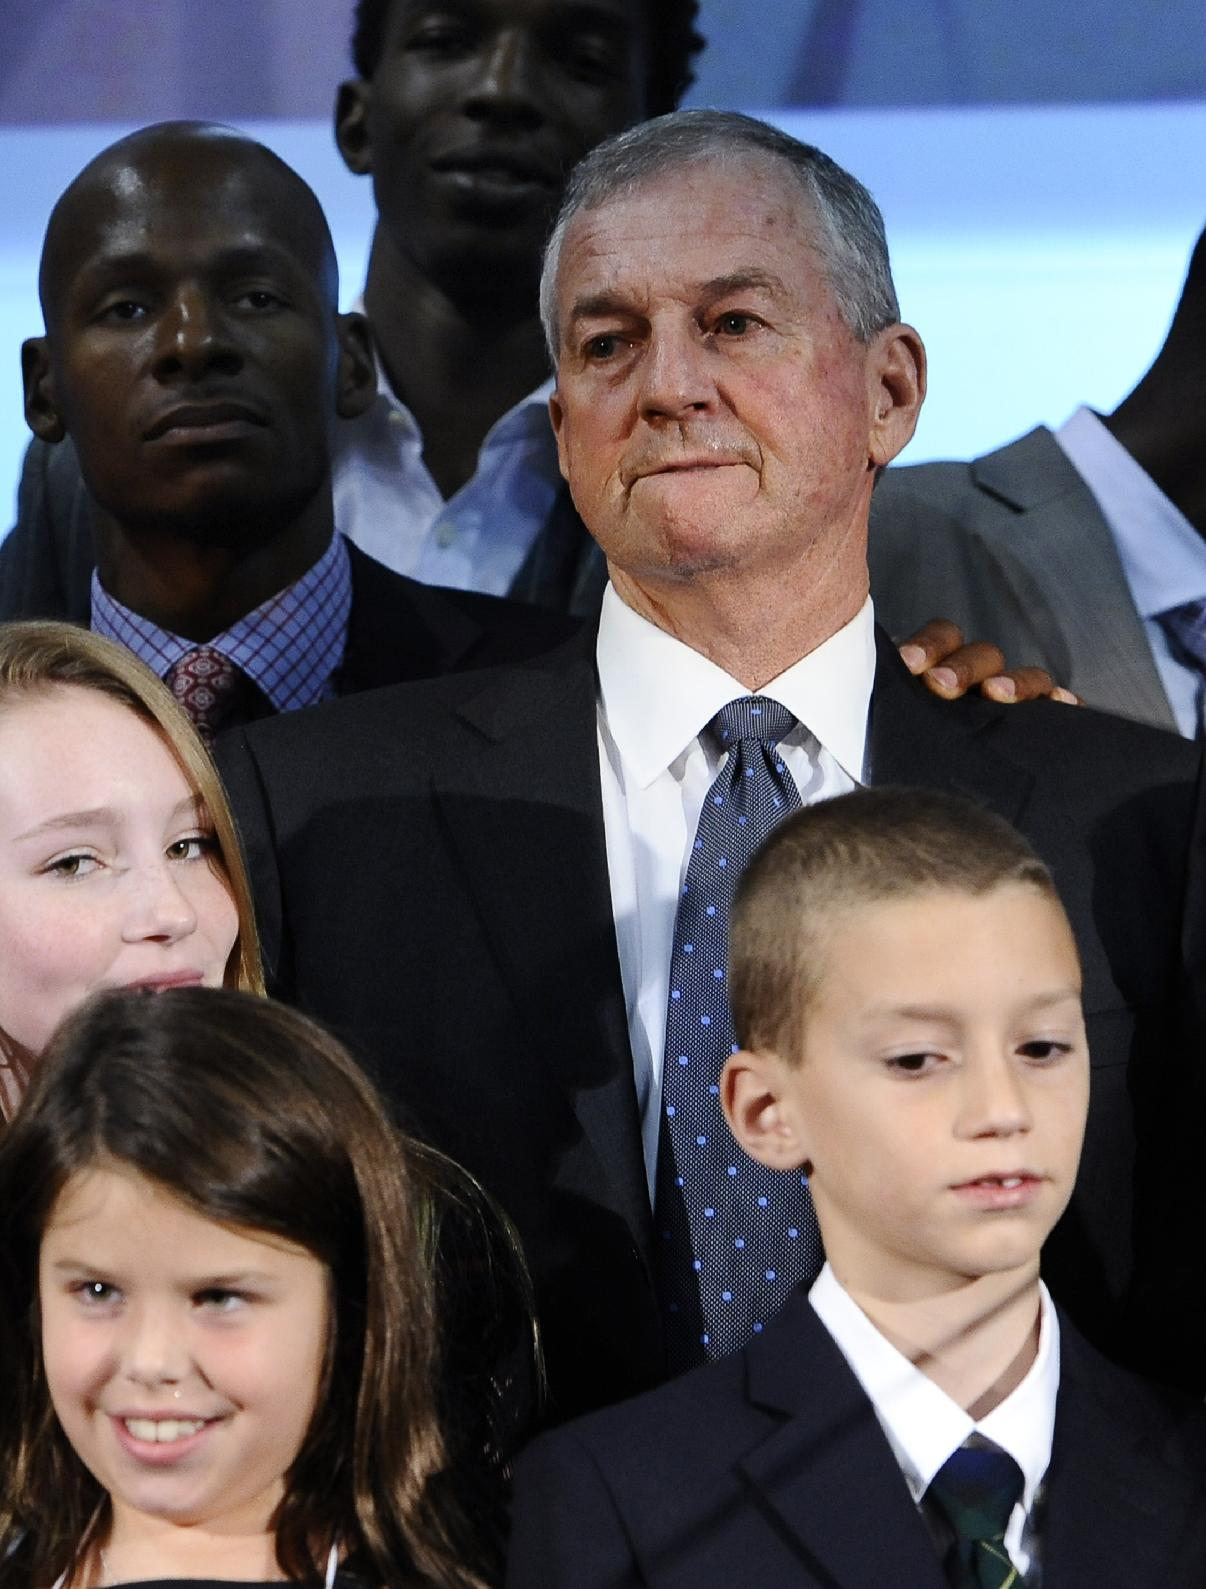 Jim Calhoun, center, stands with his family and former players on stage during a program honoring his coaching career at the University of Connecticut, Sunday, Sept. 22, 2013, in Storrs, Conn. Calhoun retired a year ago with 873 wins and 380 losses after 40 seasons as a head coach, 26 of them at Connecticut